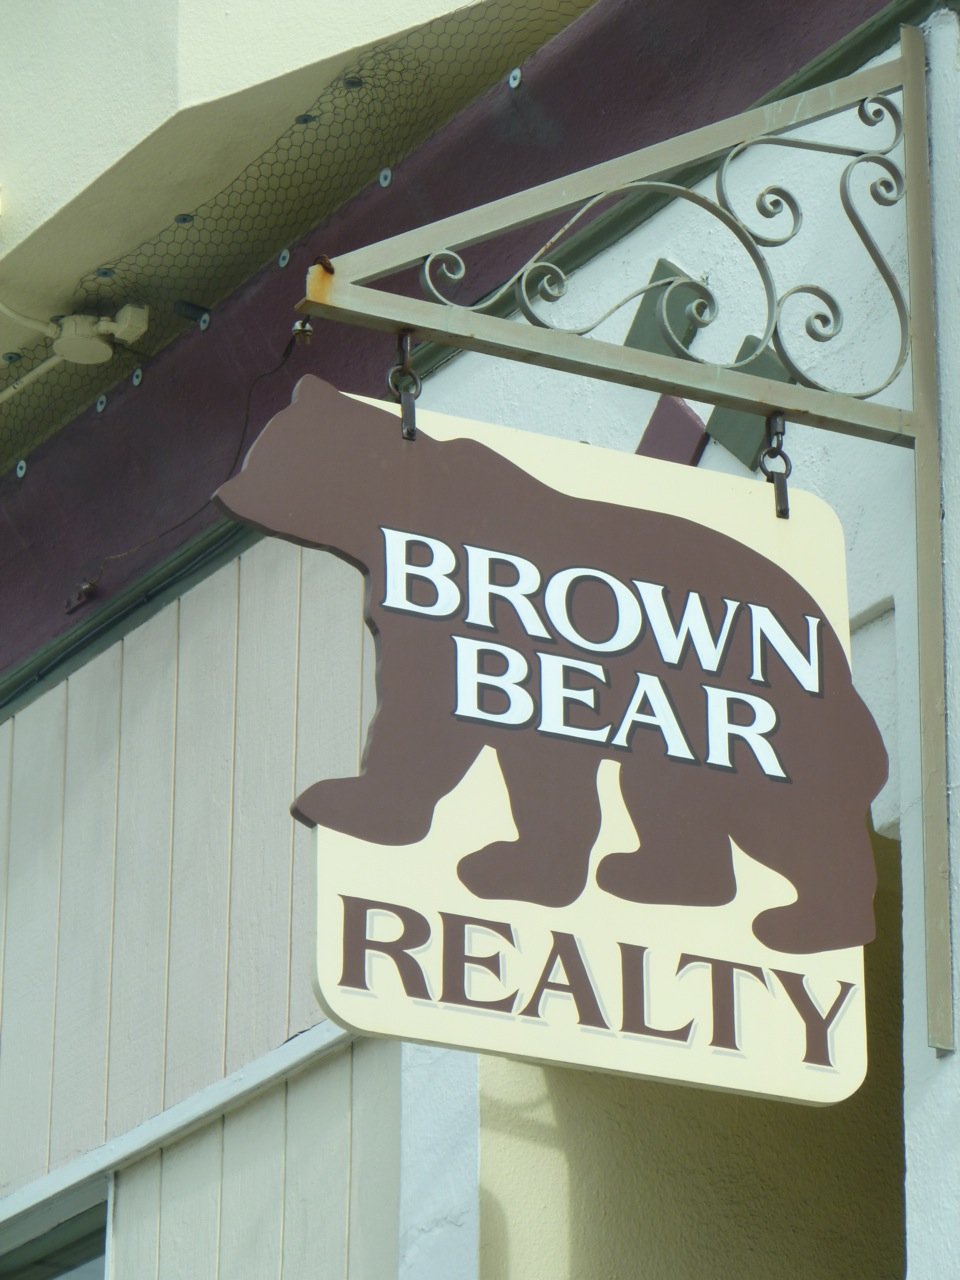 HAND-brown-bear-projecting-sign_5877679279_o.jpg